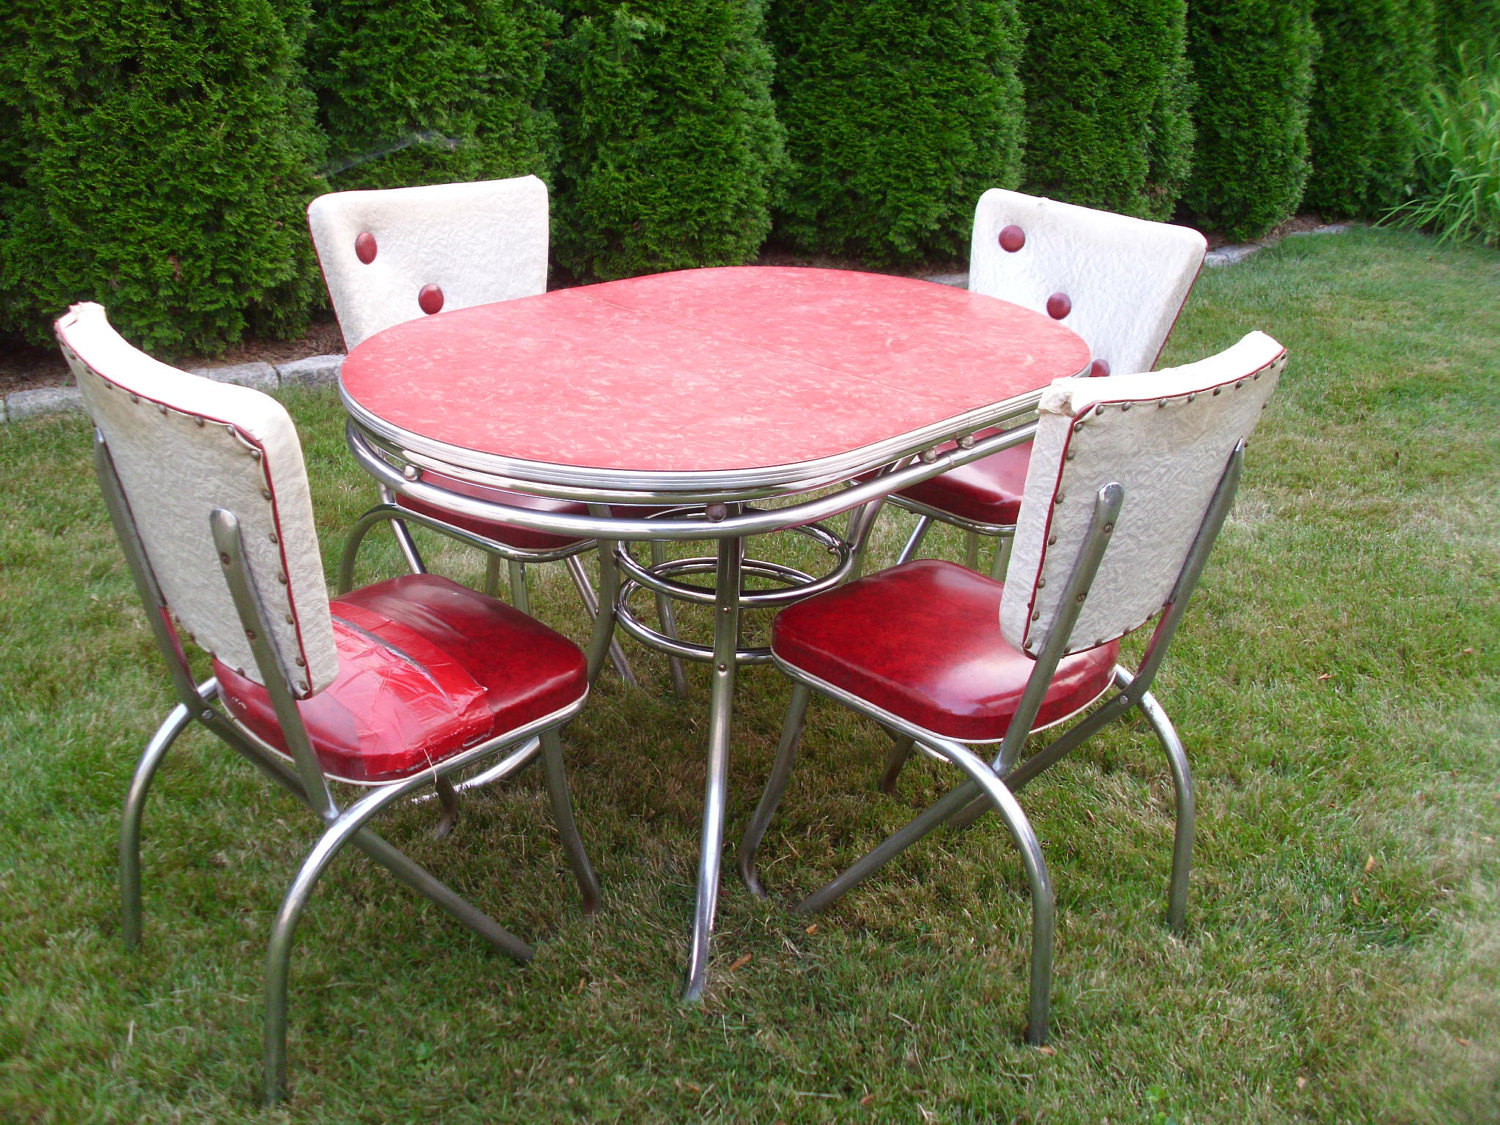 red kitchen table set world beef jerky retro chairs when become a